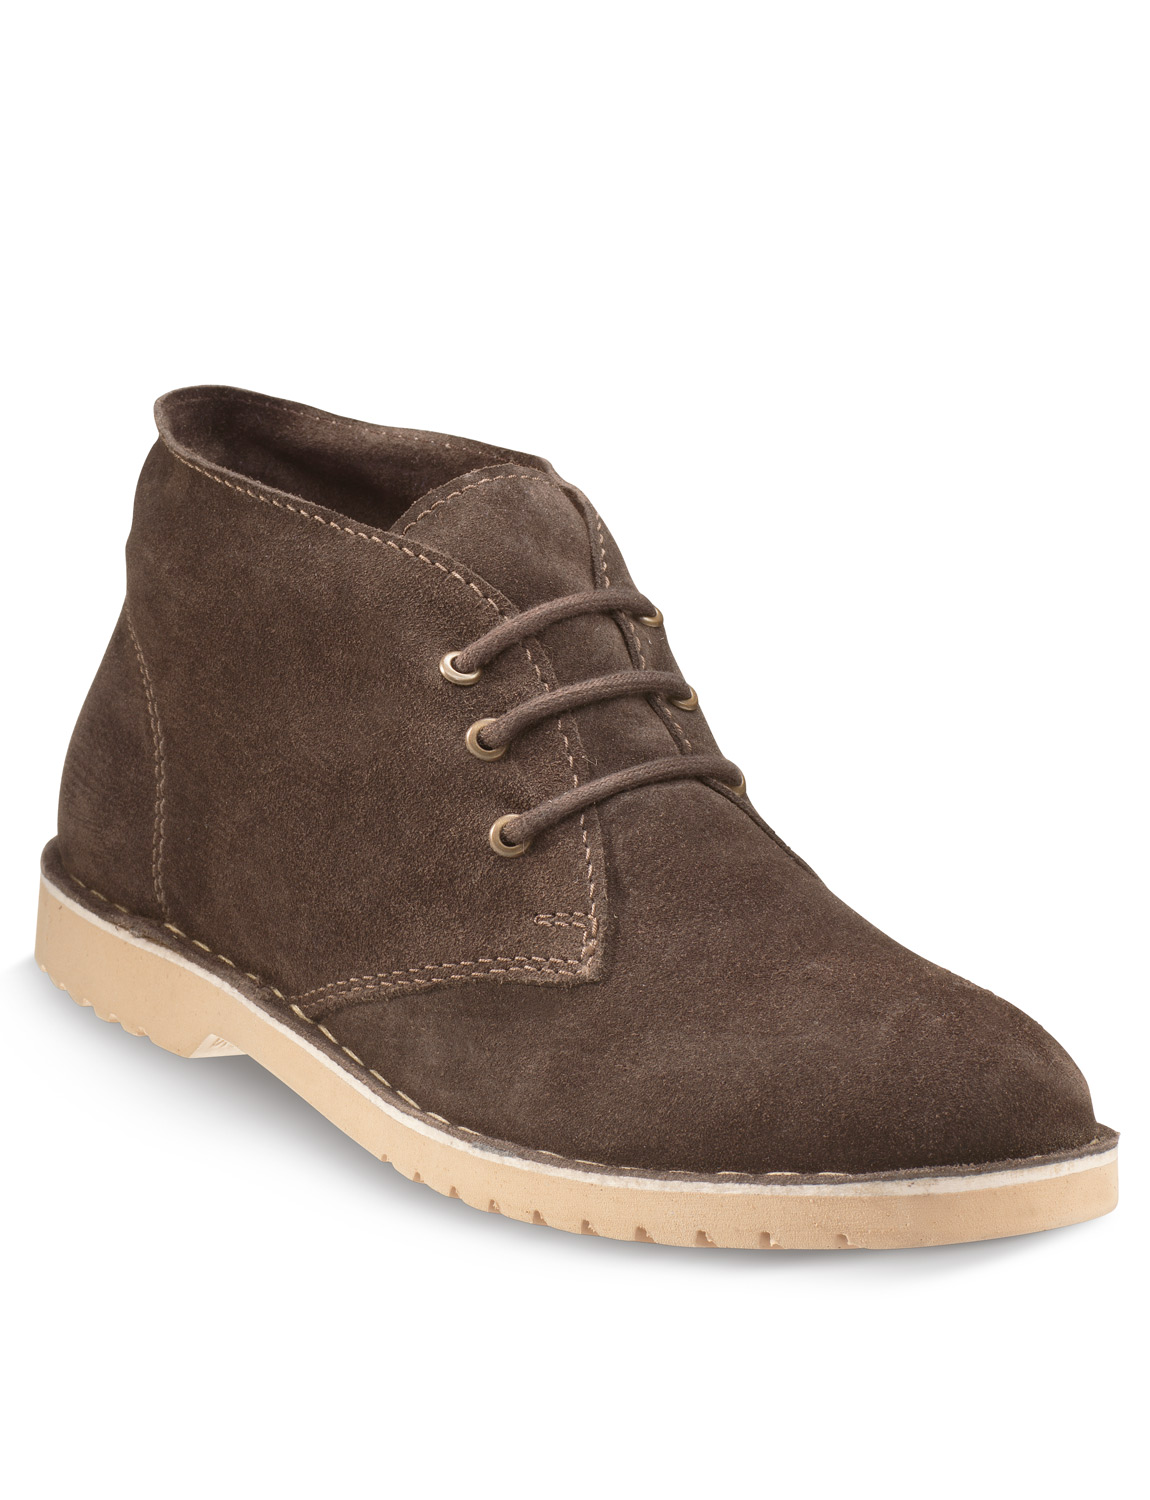 Desert Boot Mens Originals Boots Brown. Choose size & width and Add to Bag $ ADD TO SHOPPING BAG. Please select a size. Whether you are looking to keep your suede looking fresh or your leather shoes looking as shiny as the day you purchased them we have everything you need. Shop our accessories and complete your look today! Handbags;.